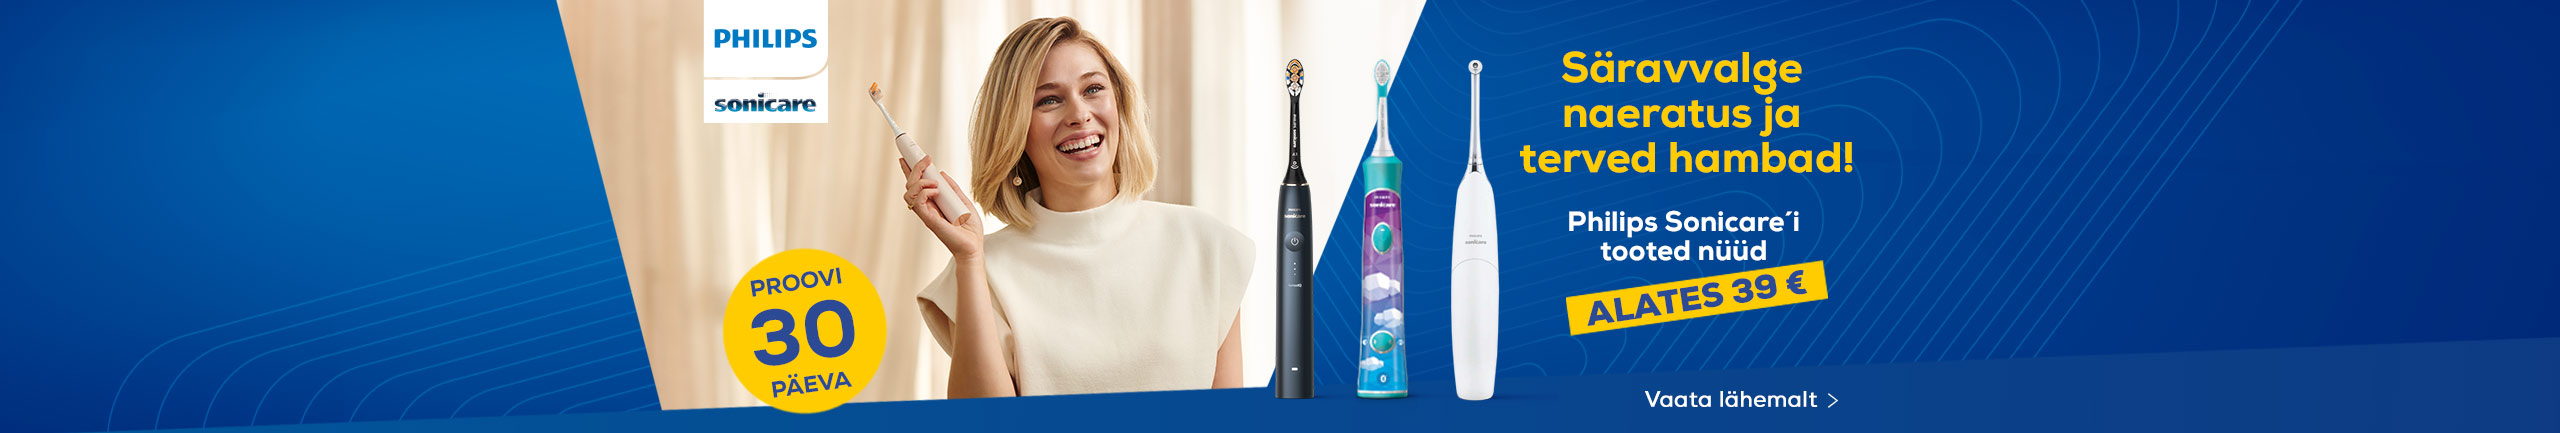 Philips Sonicare products now from 39 €